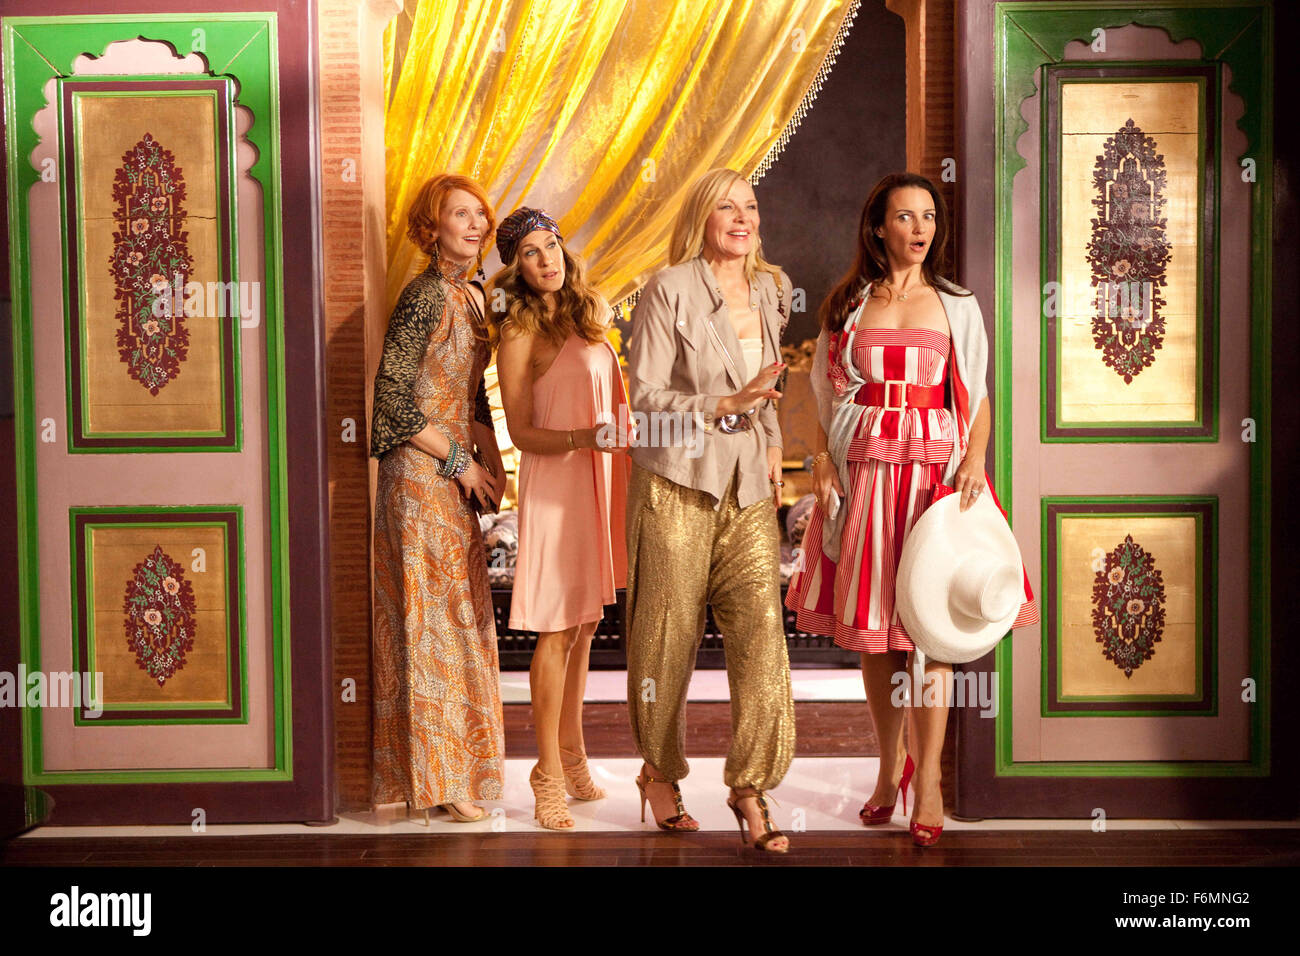 RELEASE DATE: May 27, 2010   MOVIE TITLE: Sex and the City 2   STUDIO: New Line Cinema   DIRECTOR:  Michael Patrick Stock Photo